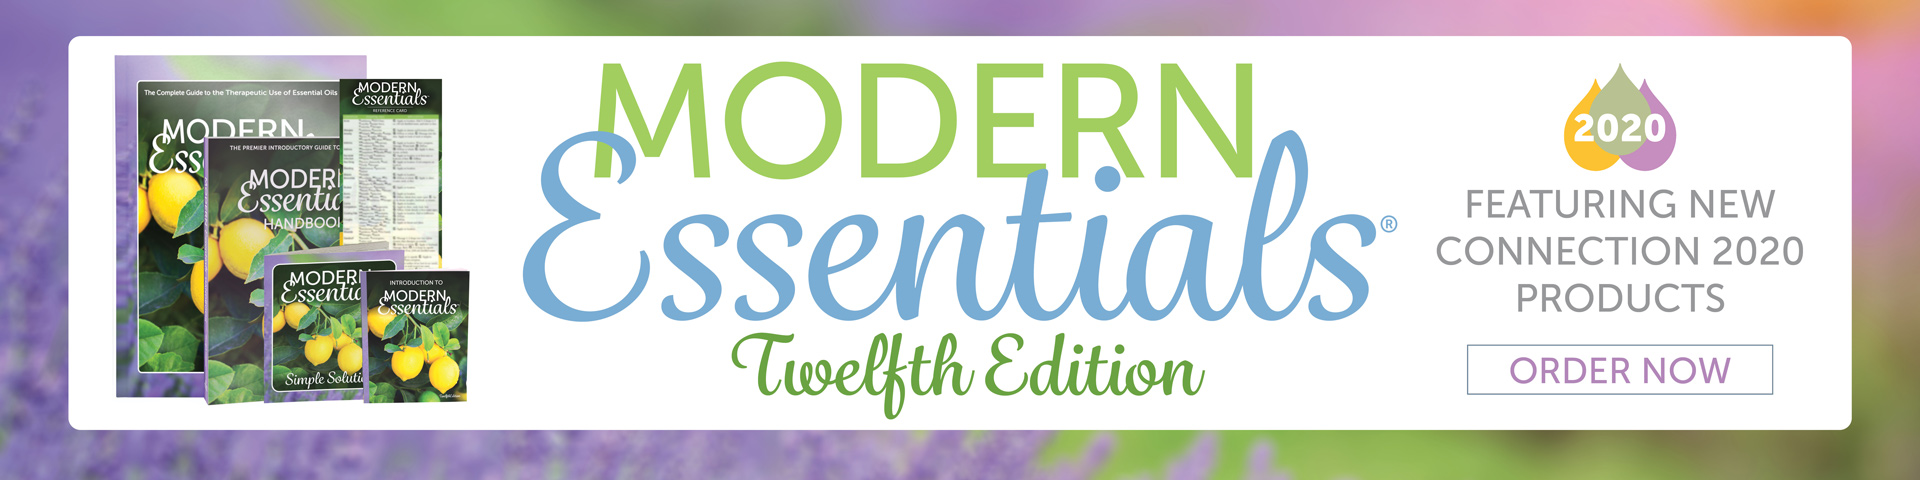 NOW Available for Preorder!  Modern Essentials 12th Editions